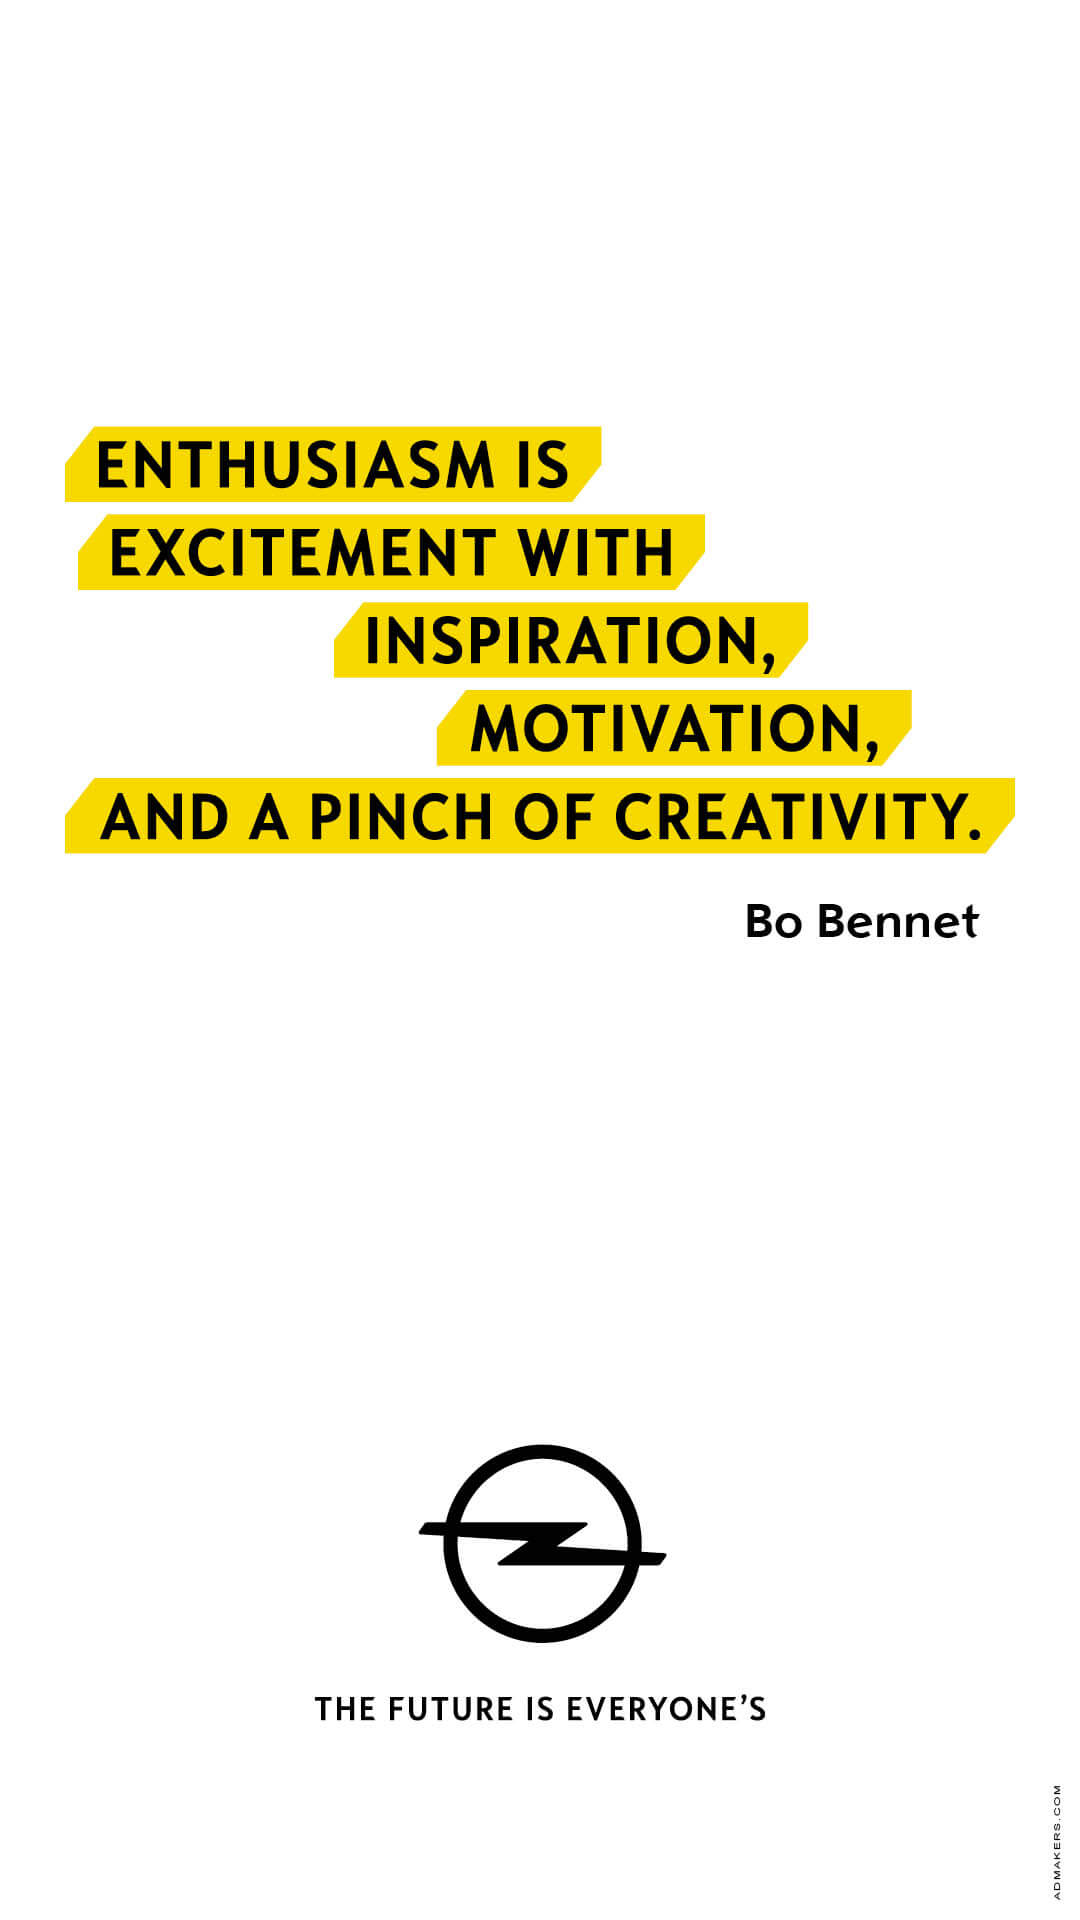 Enthusiasm is excitement with inspiration, motivation, and a pinch of creativity.